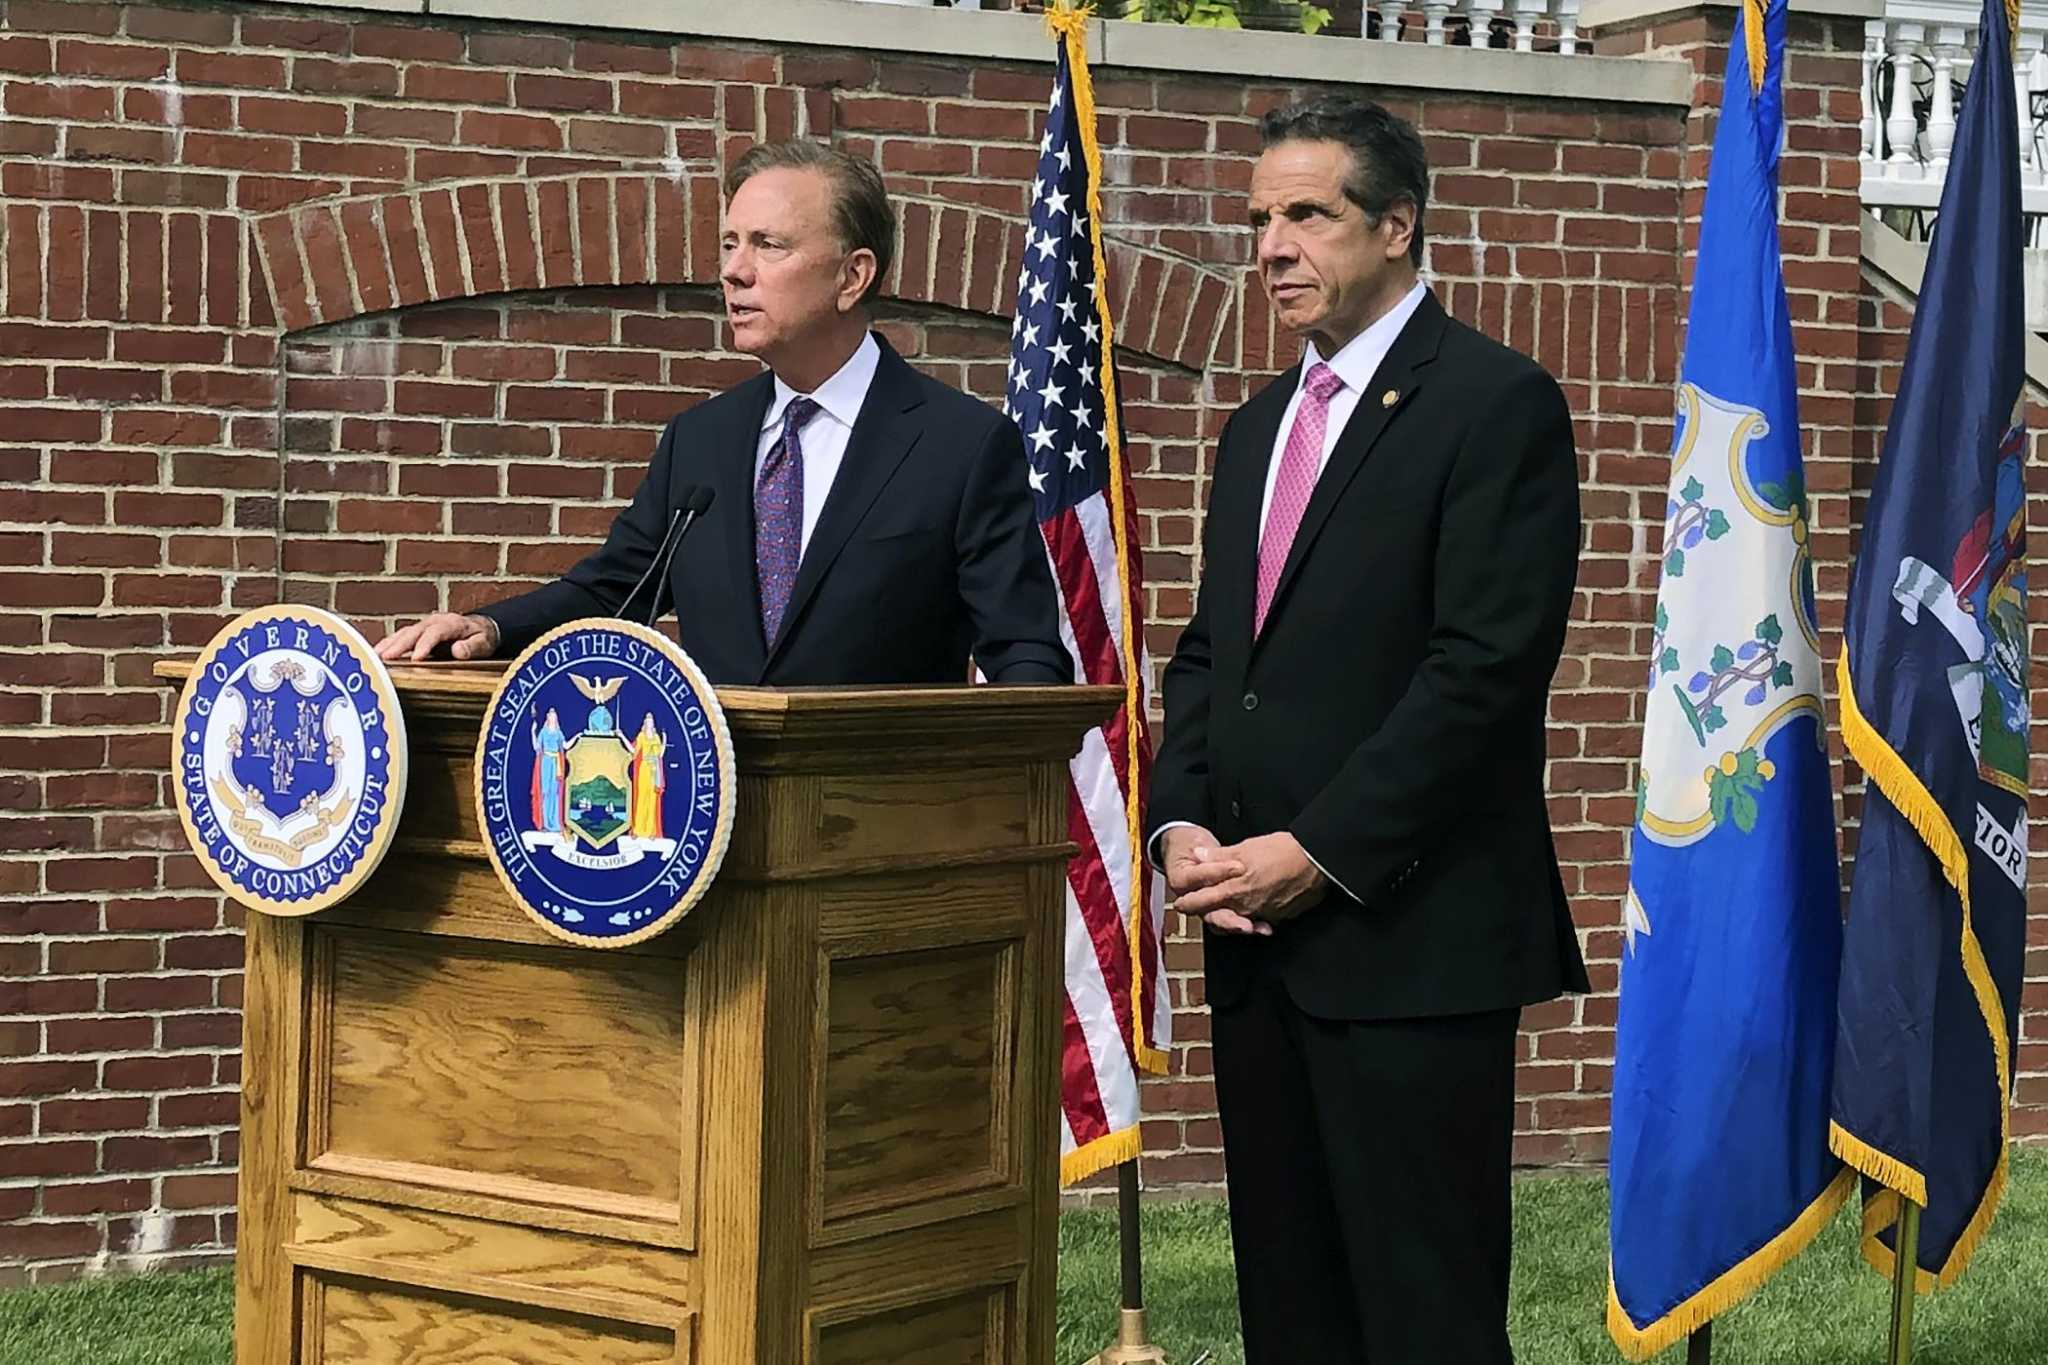 Legalizing pot in CT, NY gets new push from governors